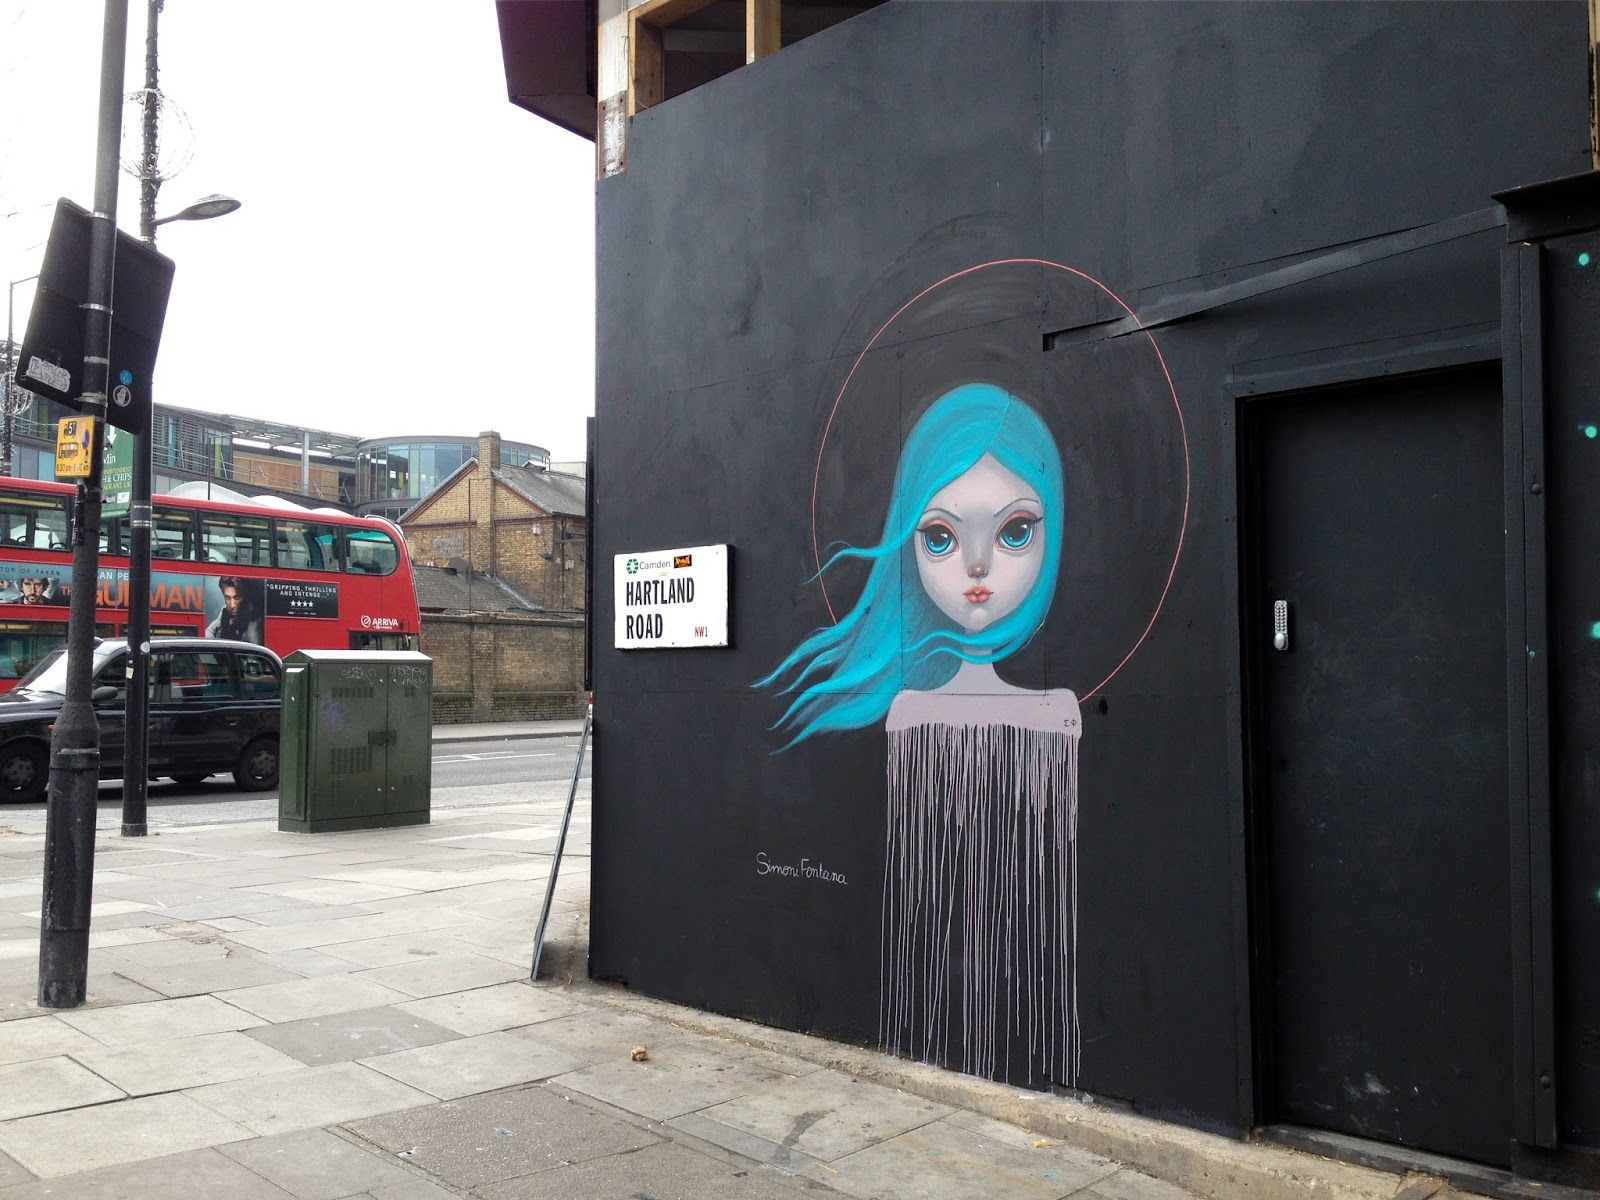 Simoni Fontana (...) - Hartland Rd London NW1 (UK)